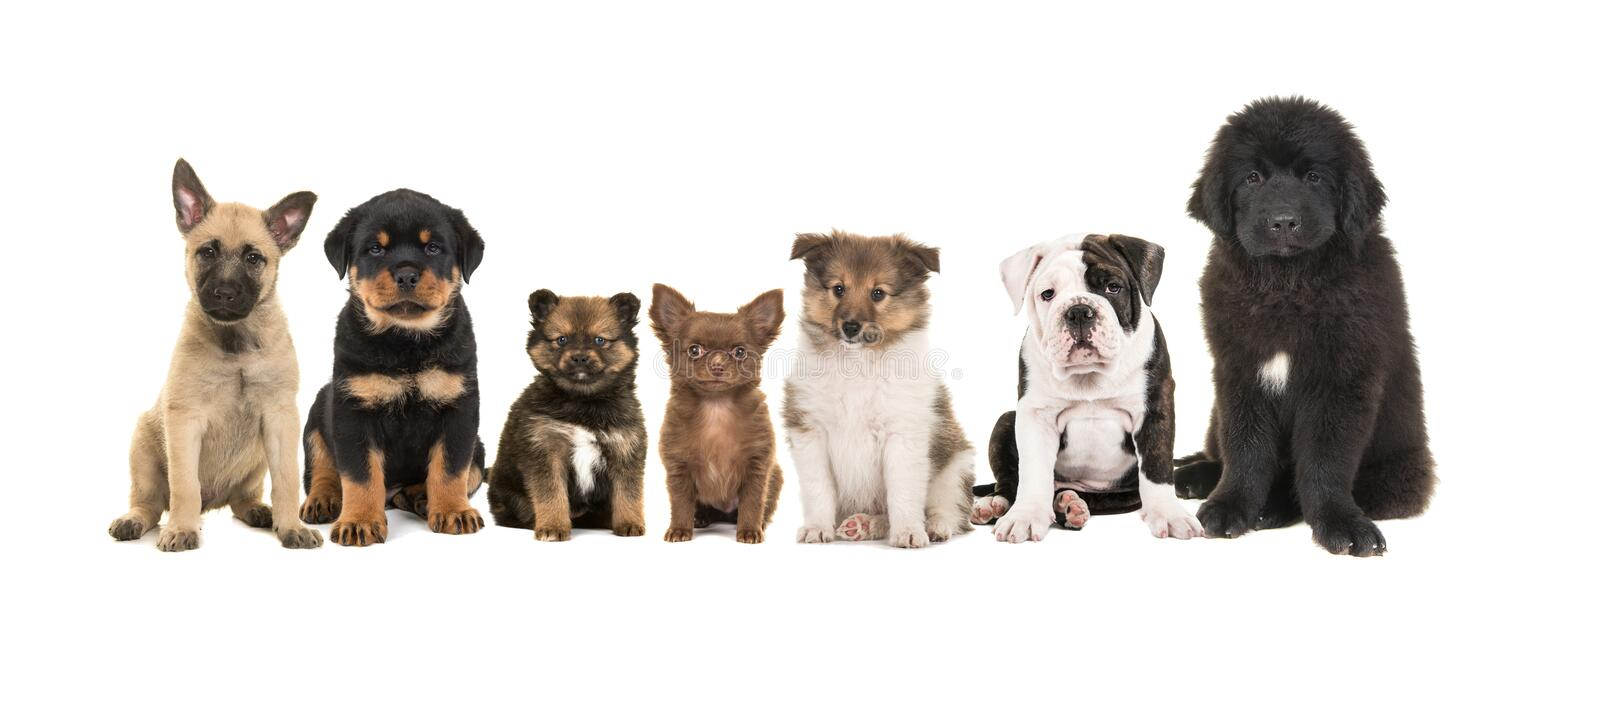 Group of zeven different puppies royalty free stock images